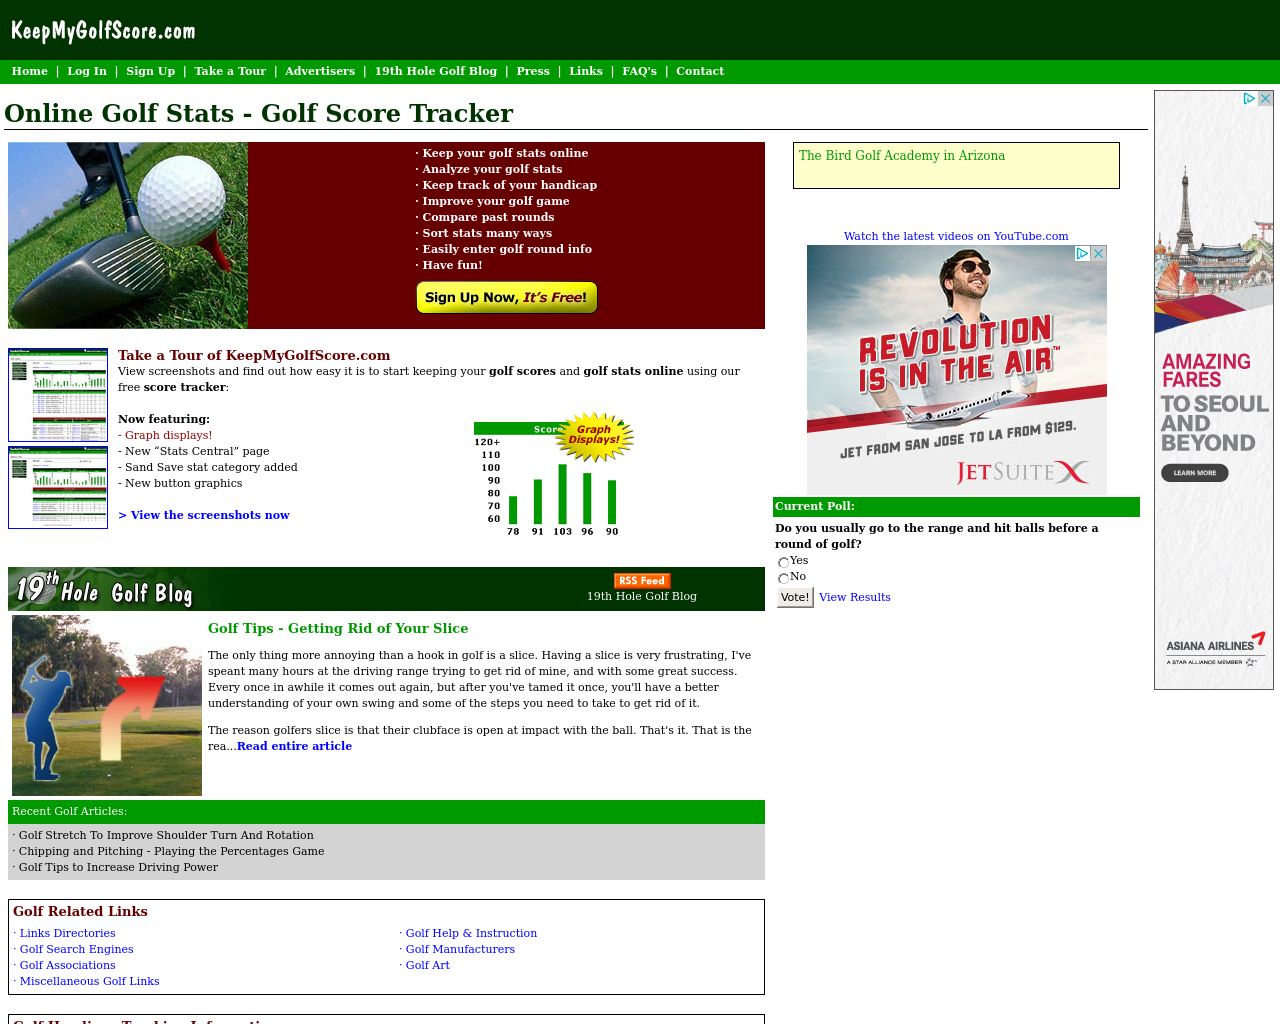 KeepMyGolfScore.com-Advertising-Reviews-Pricing